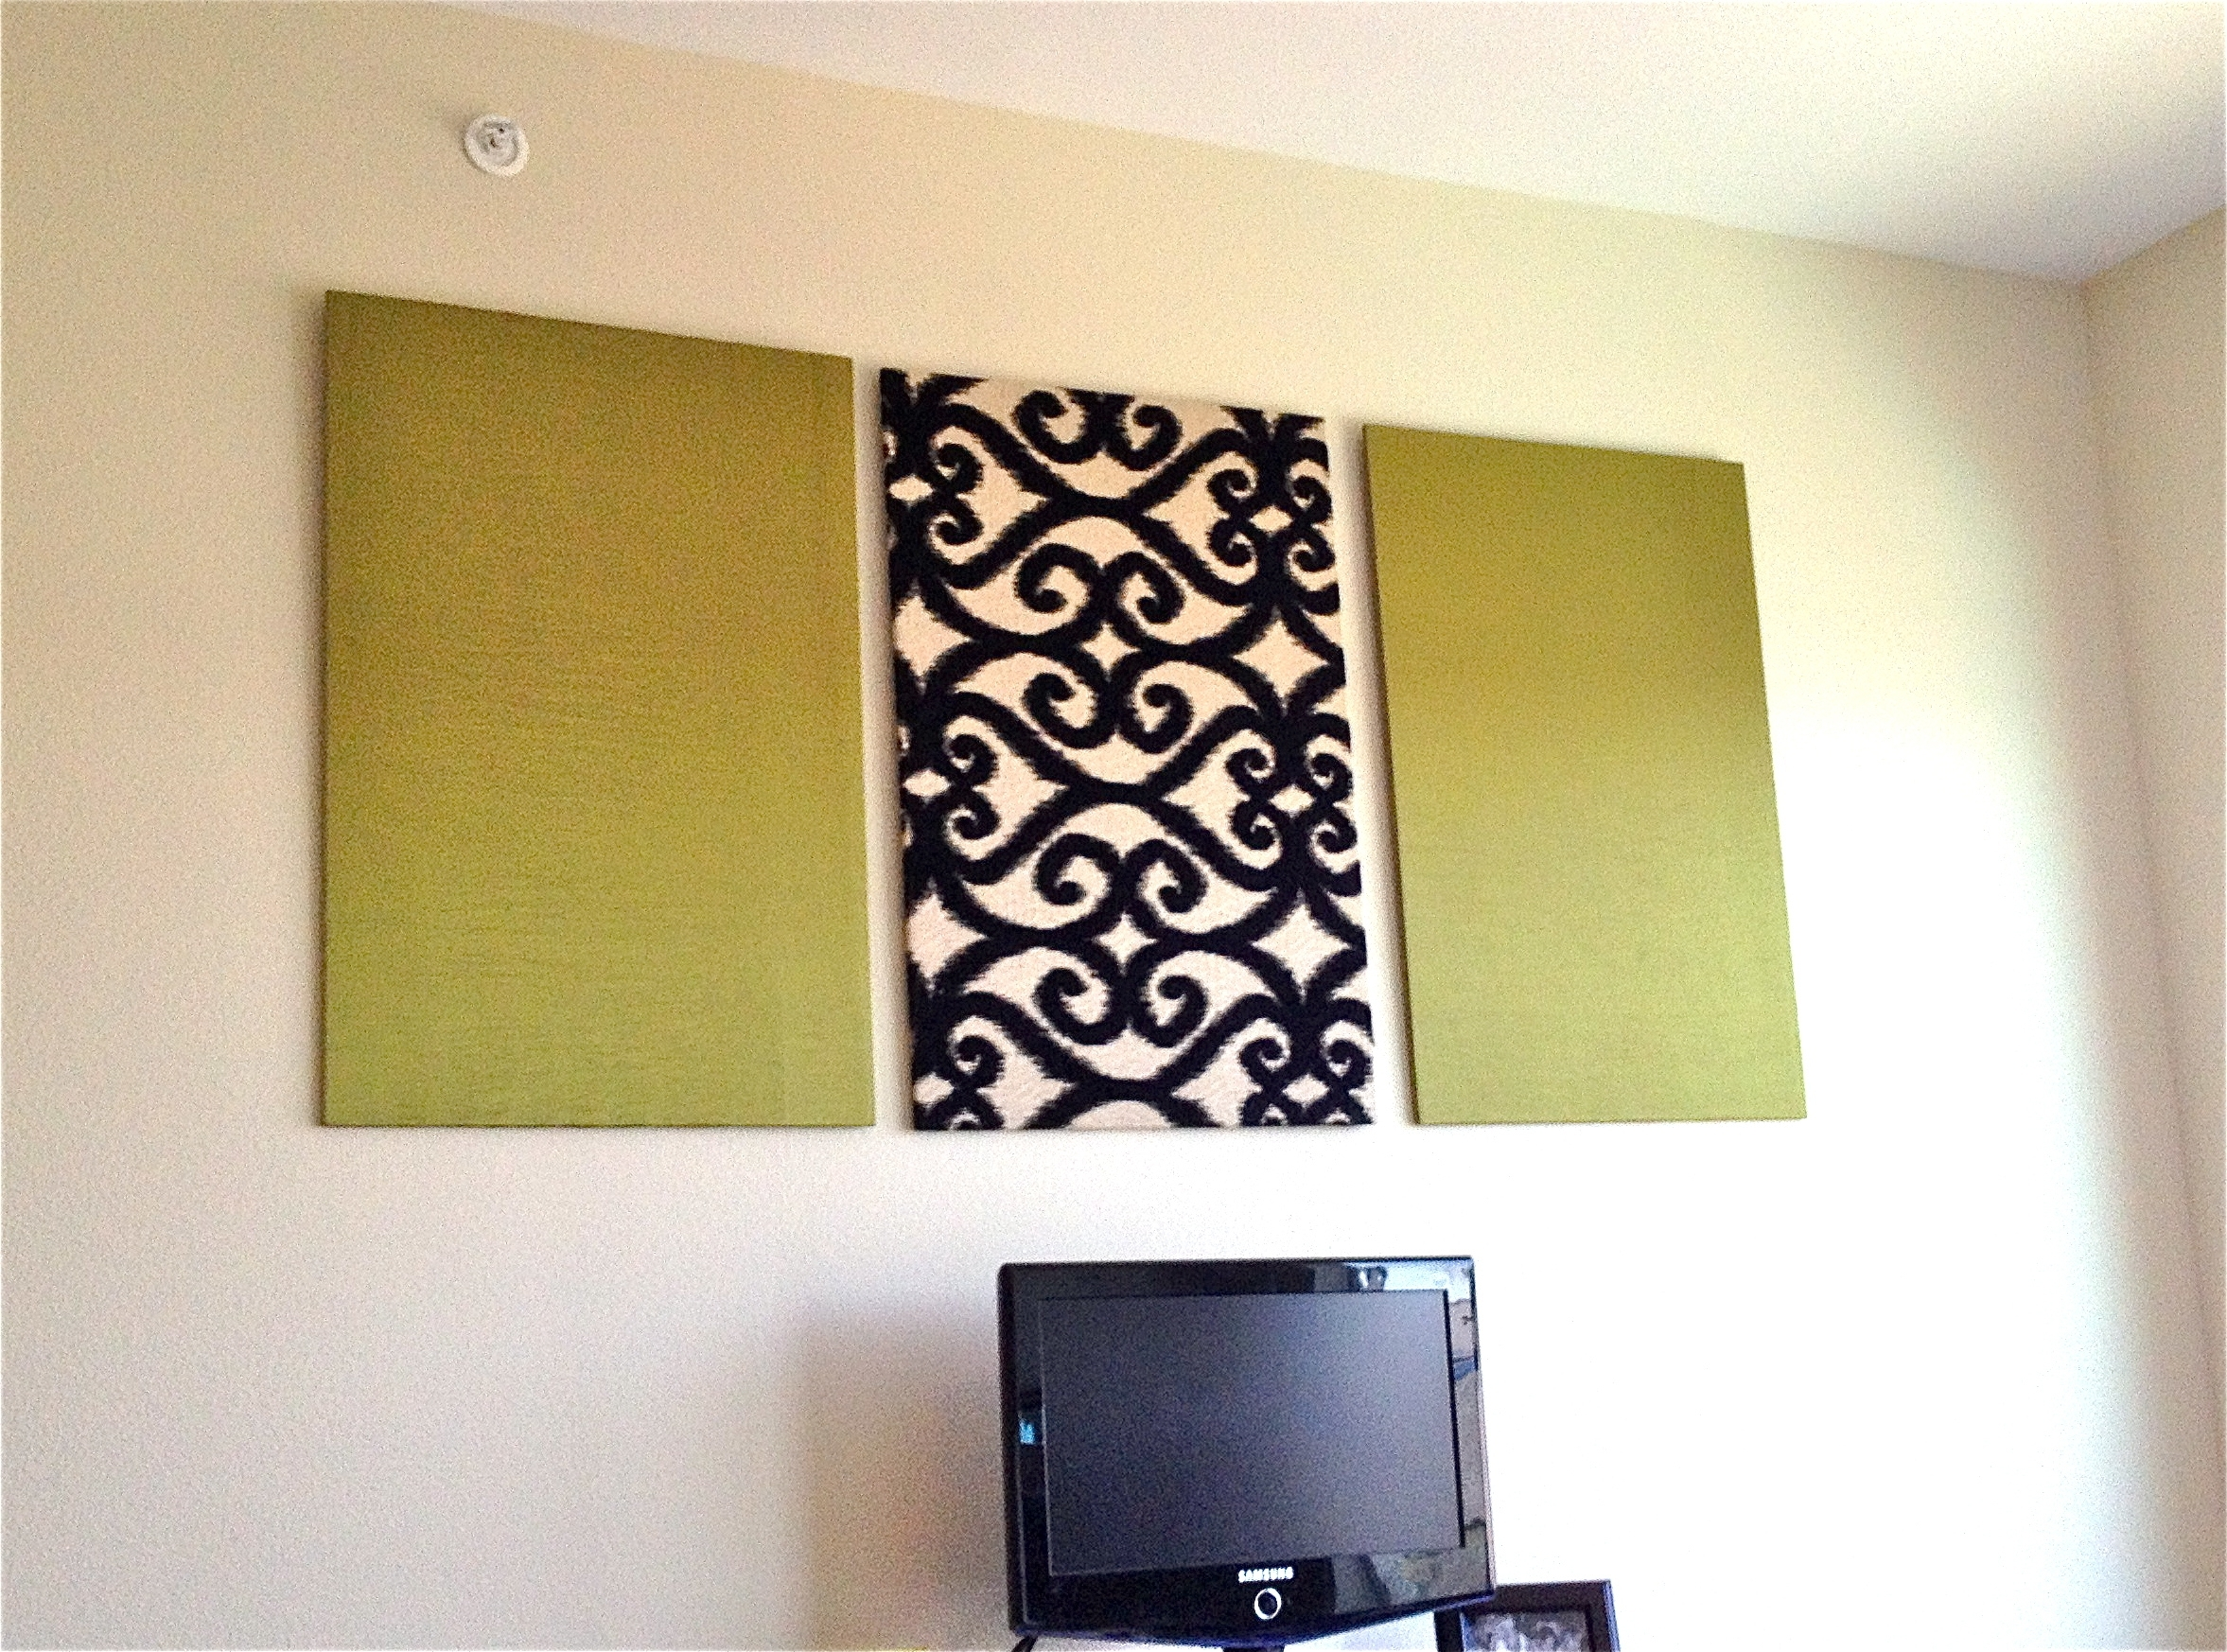 Diy Upholstered Wall Panels | Home Ideas | Pinterest | Upholstered Throughout Most Up To Date Fabric Wrapped Styrofoam Wall Art (View 10 of 15)